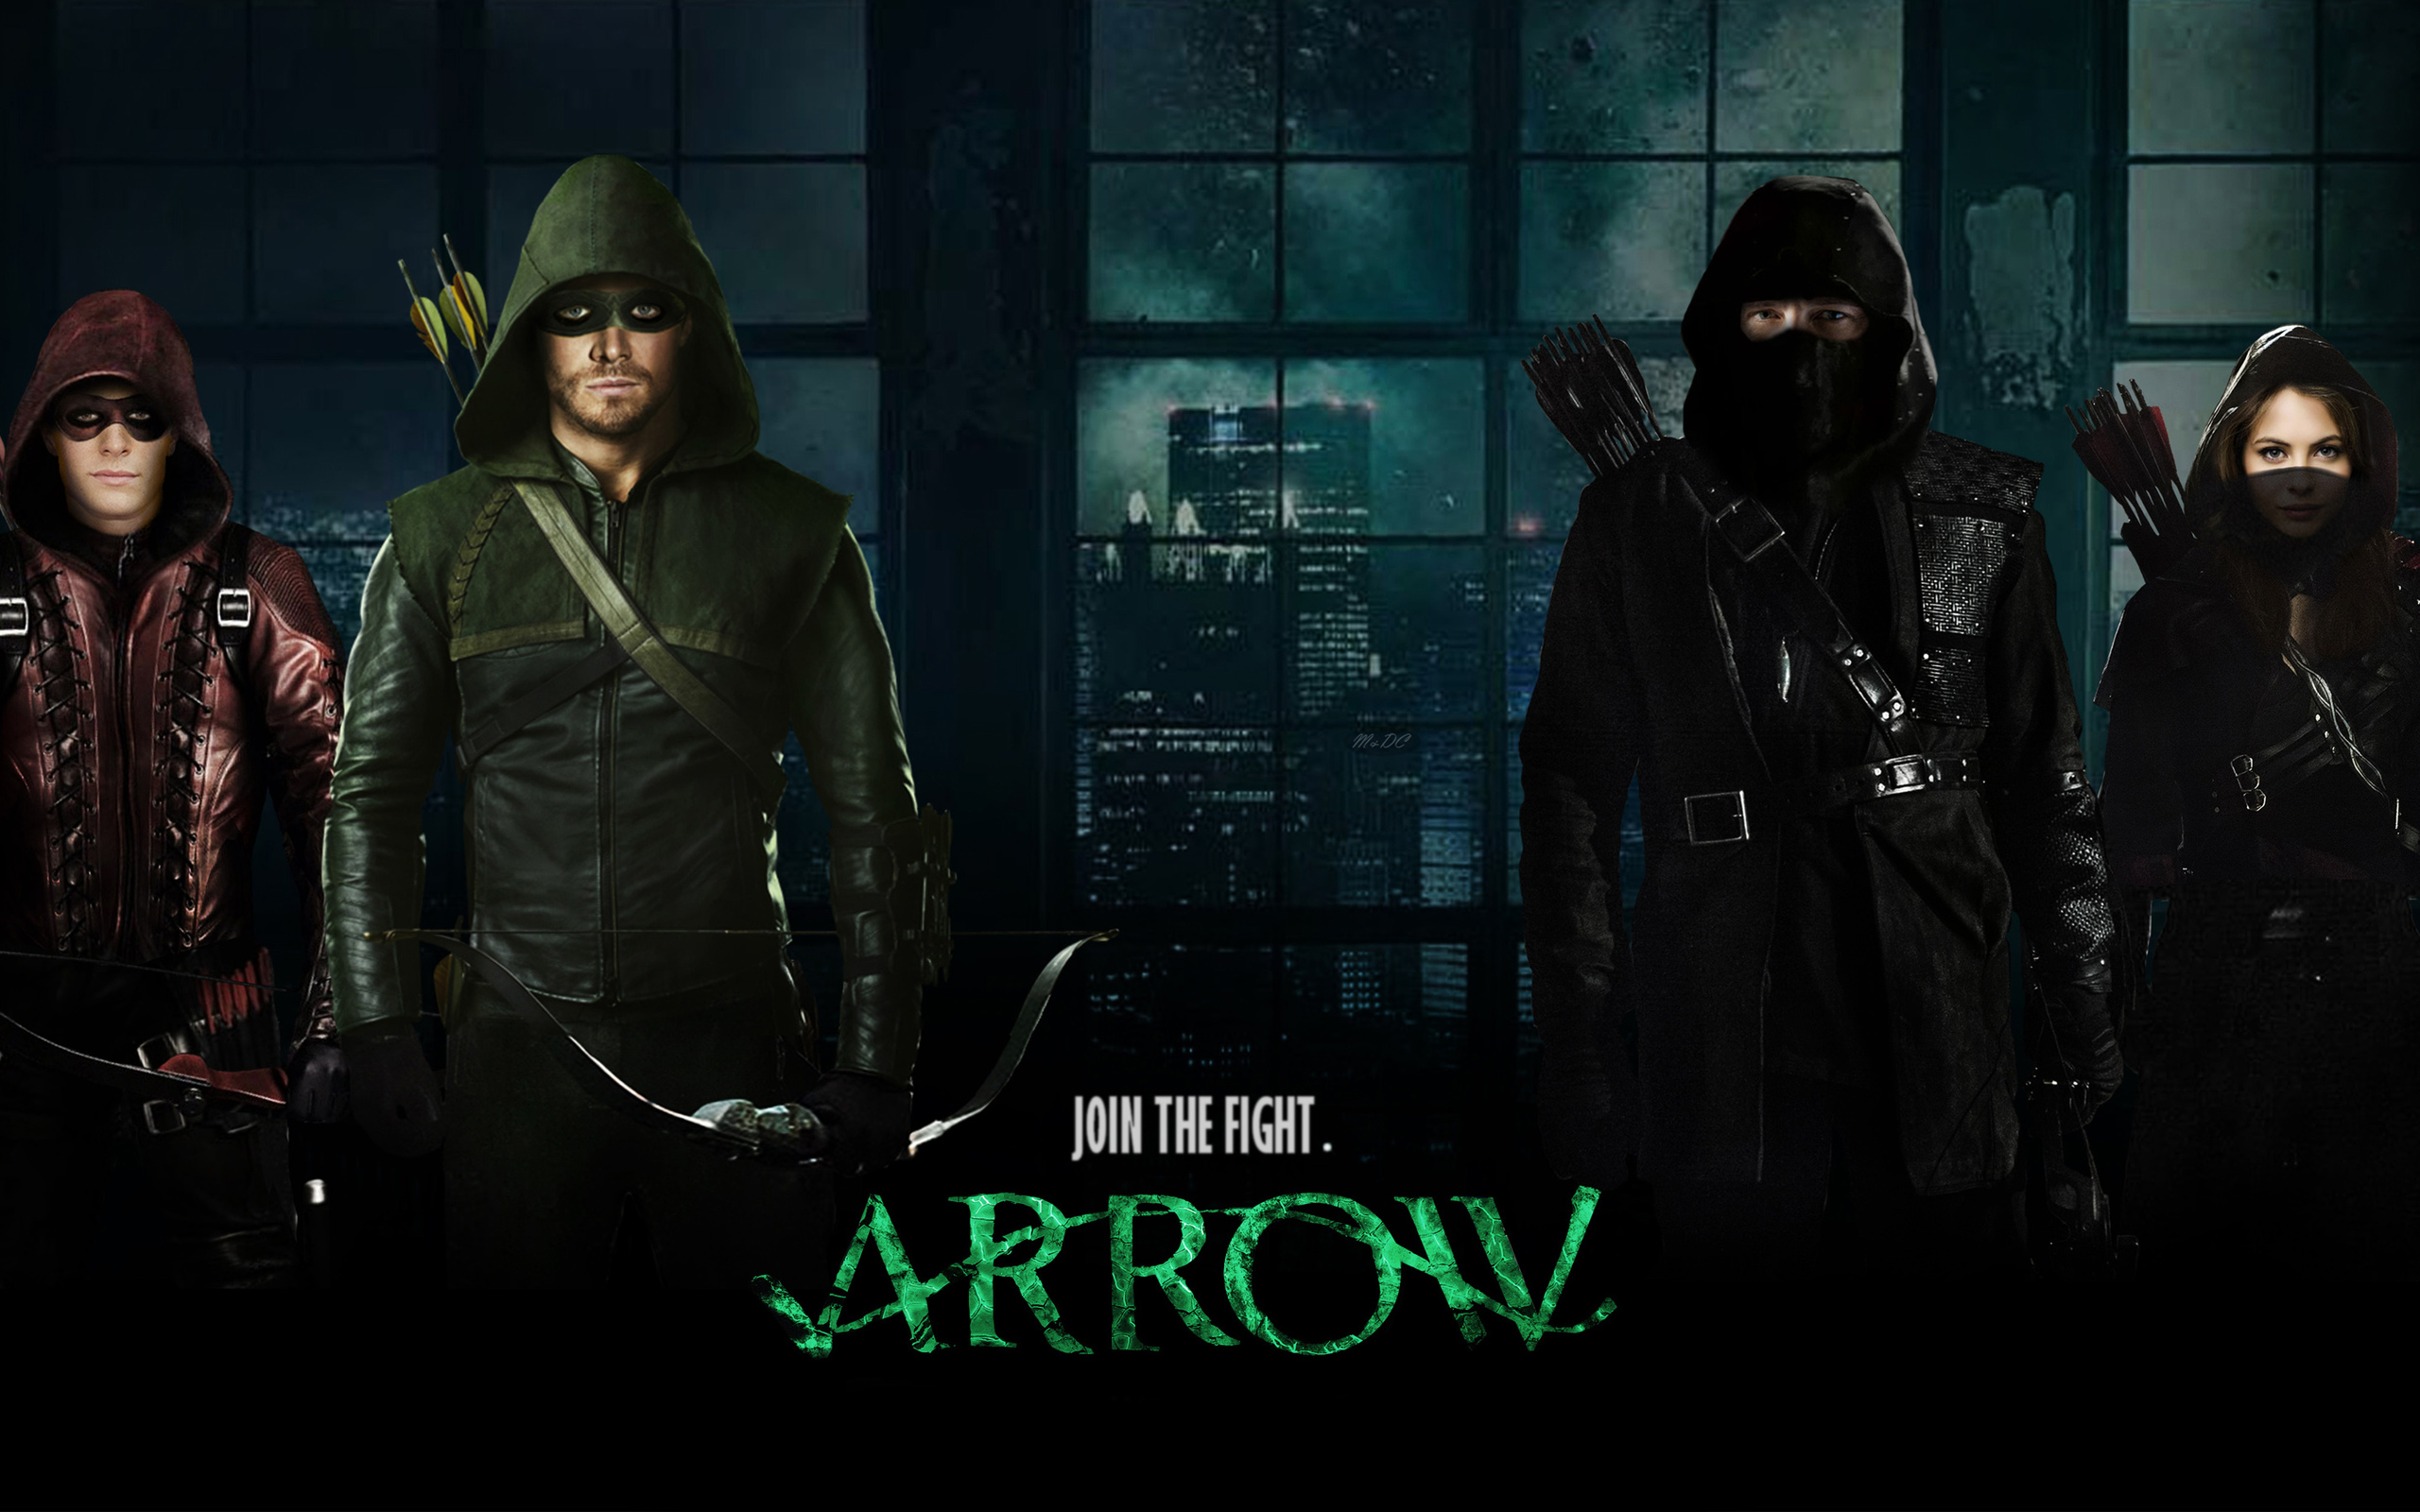 arrow-season-4-hd.jpg